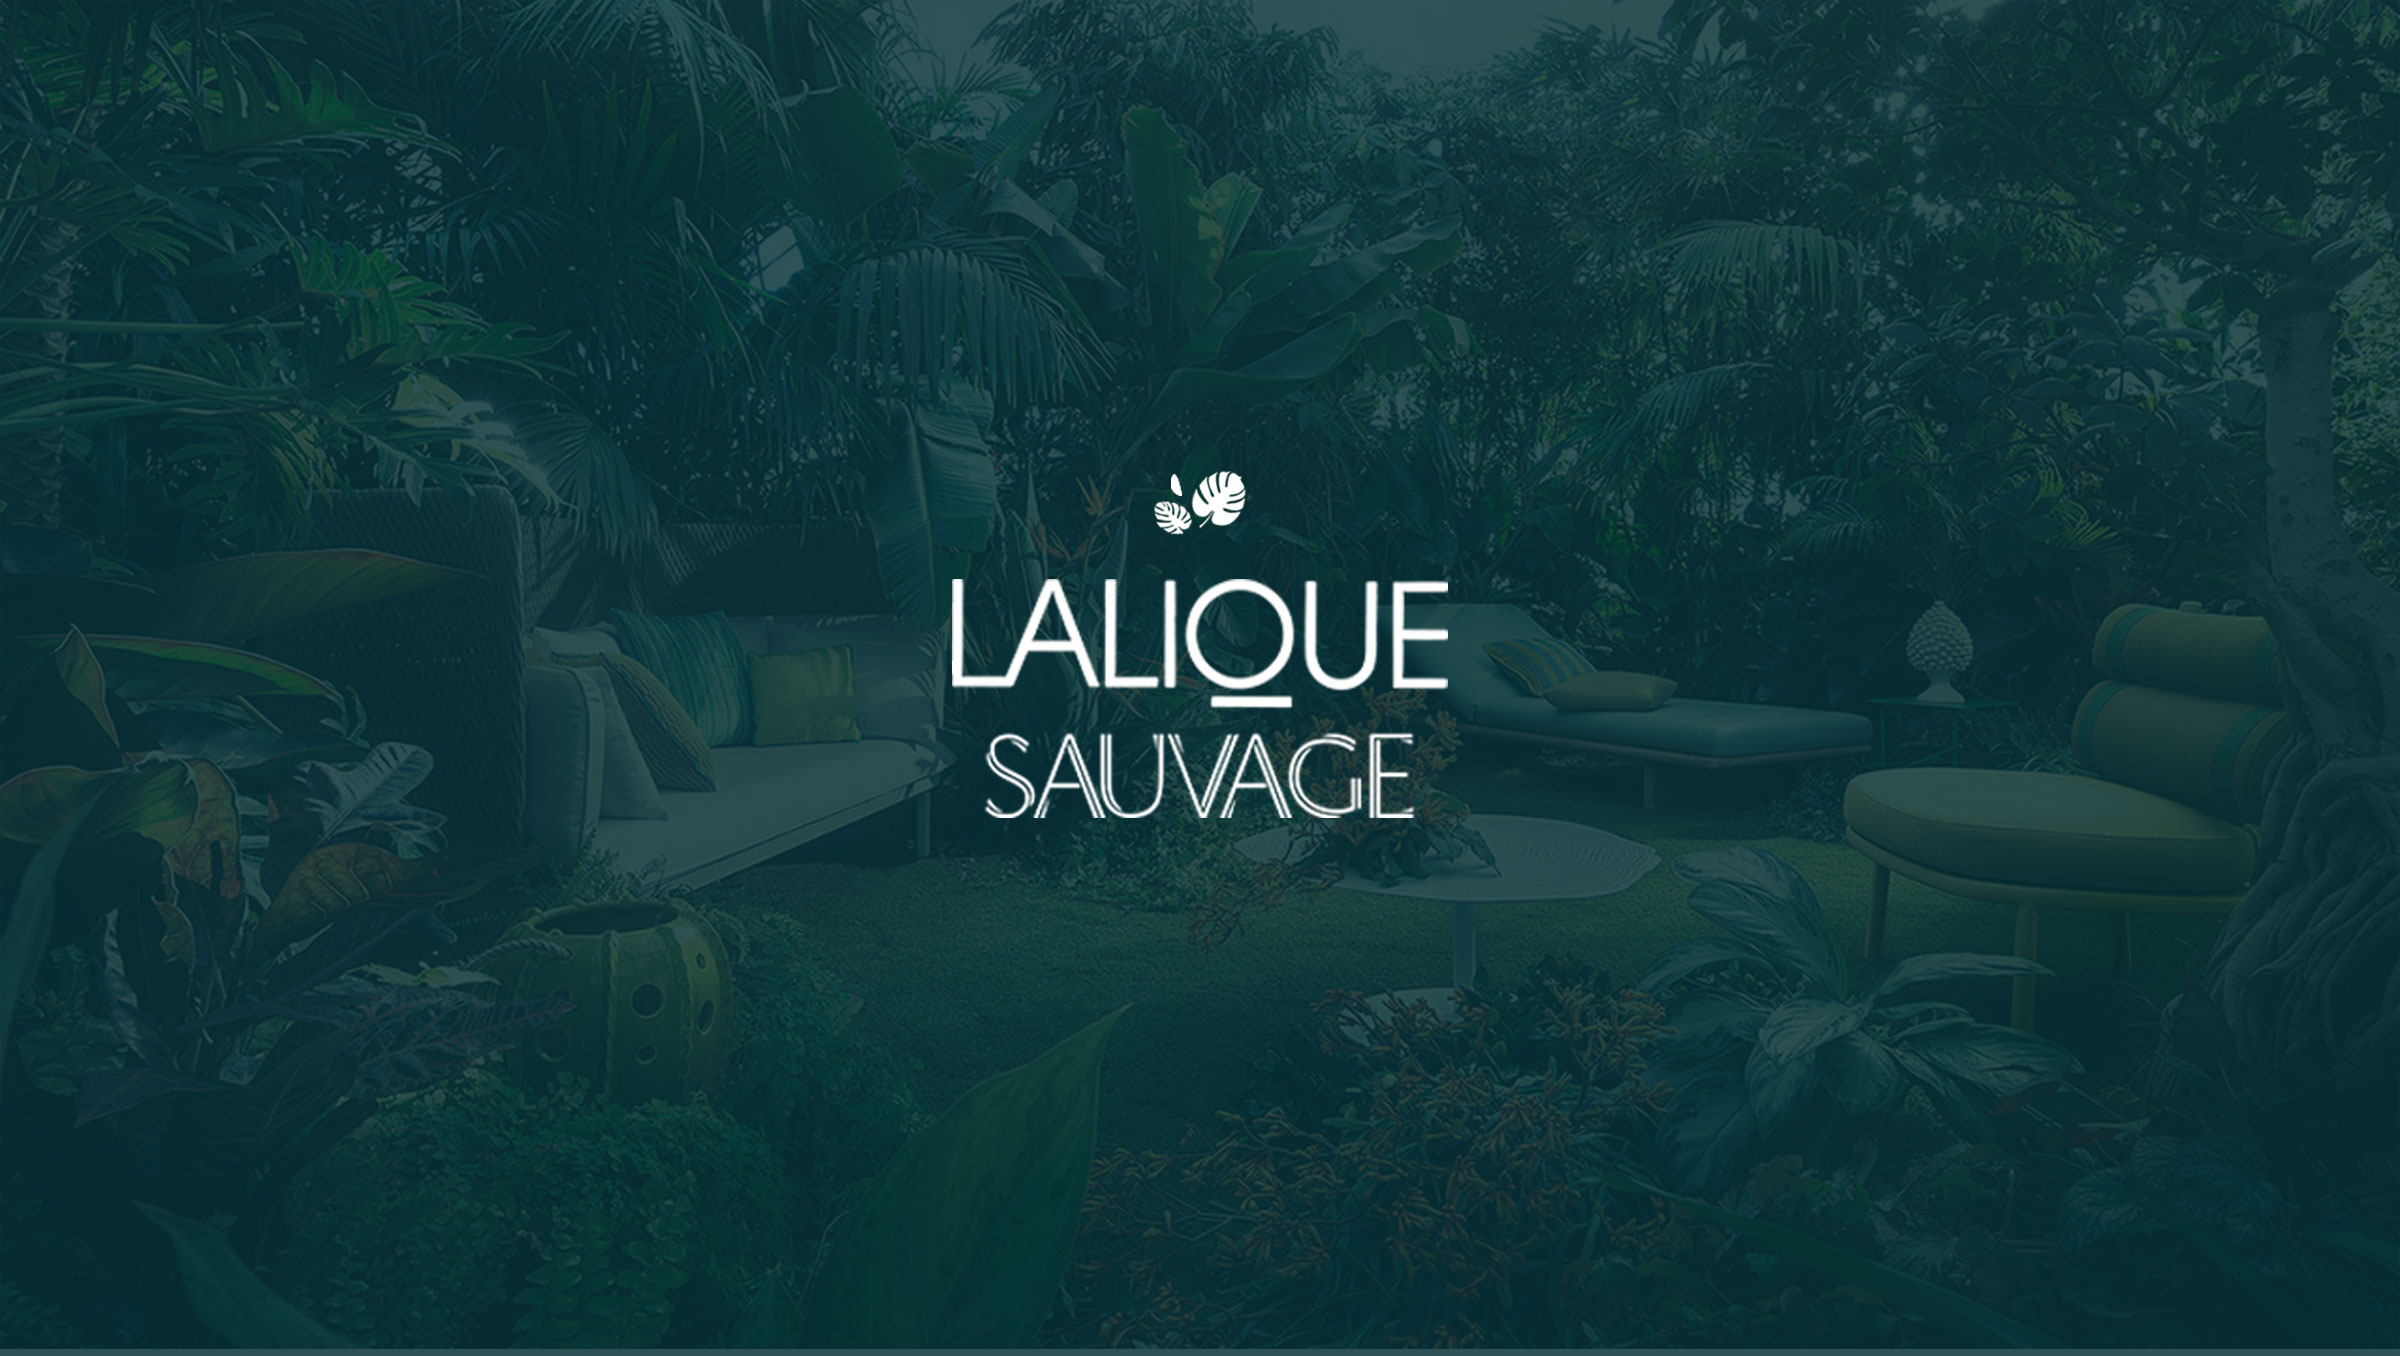 lalique-sauvage_04.jpg